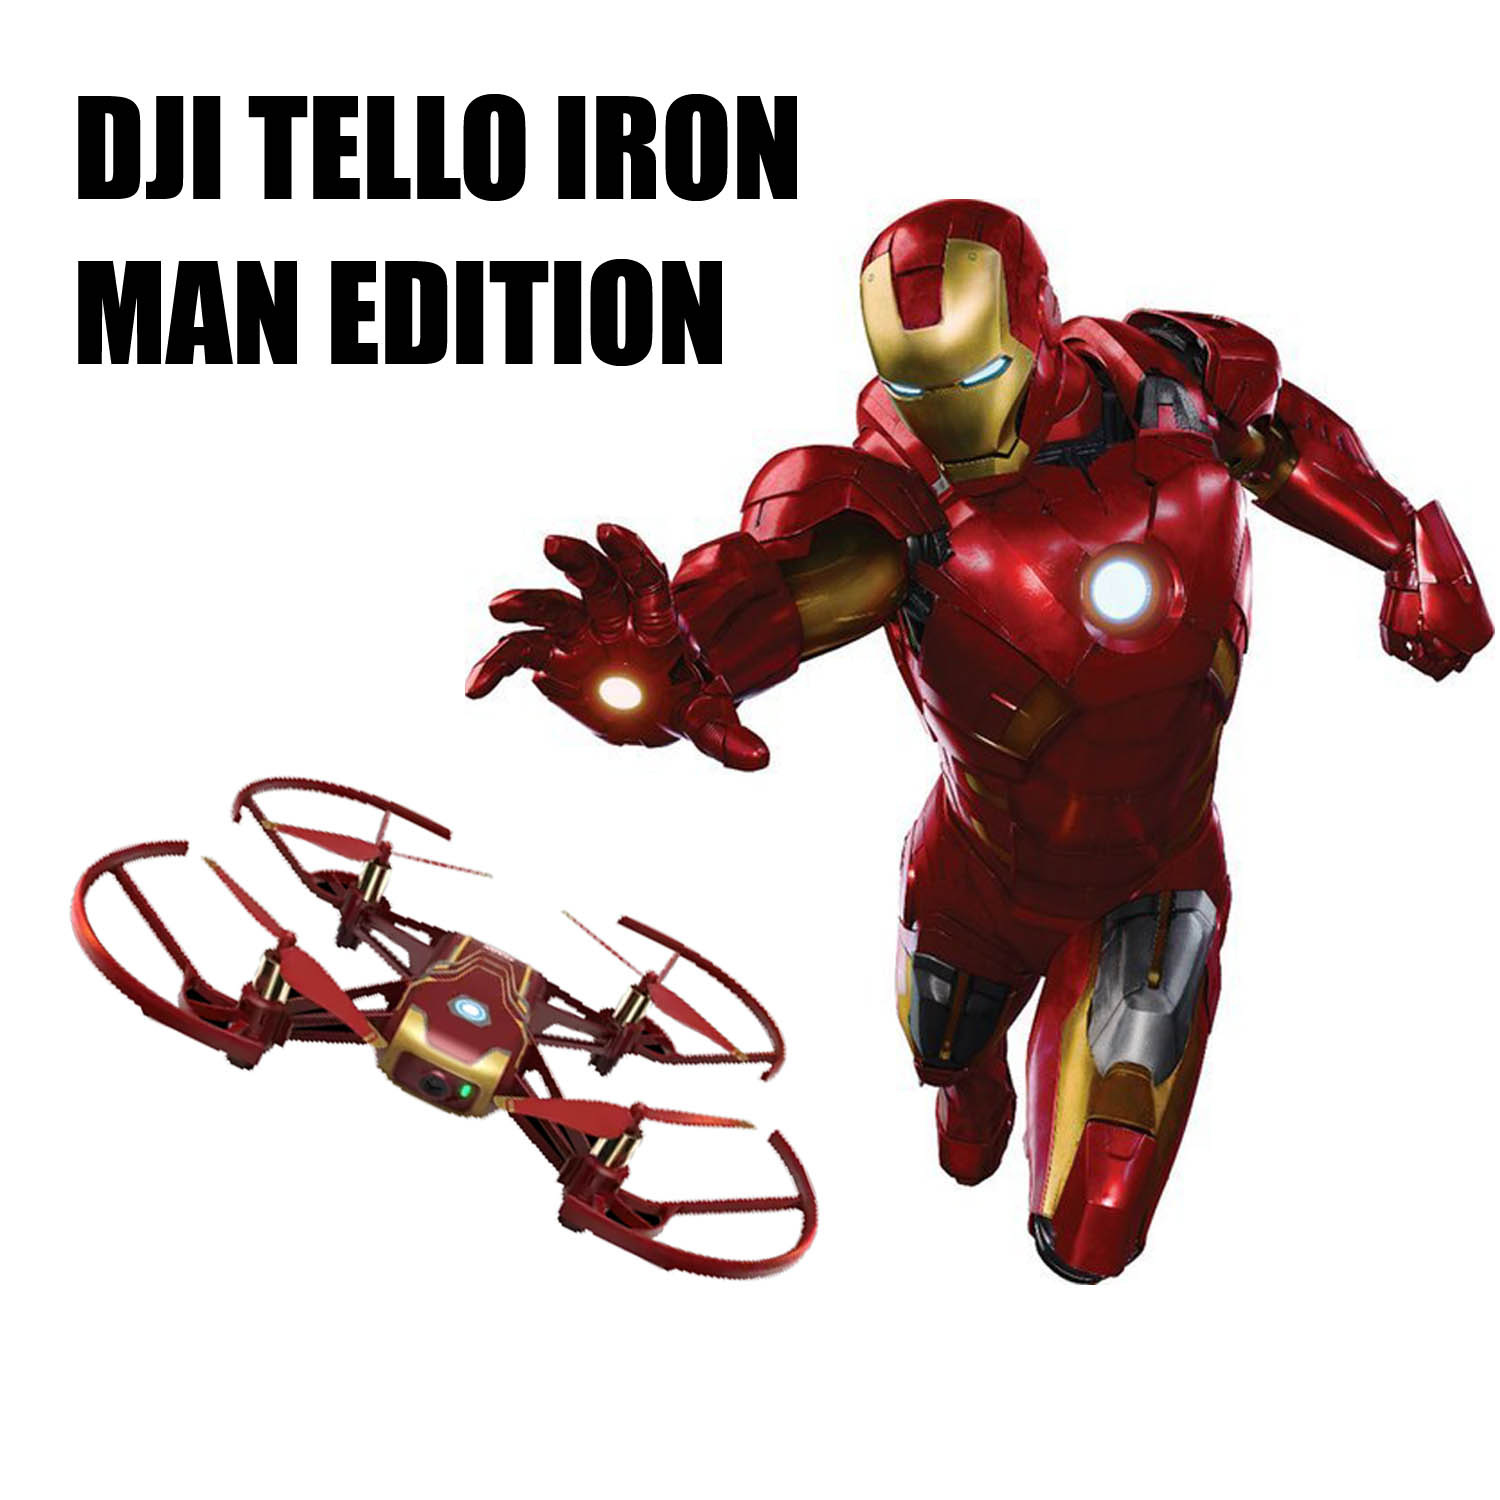 DJI Tello Iron Man Edition  The Drone in Marvel Style